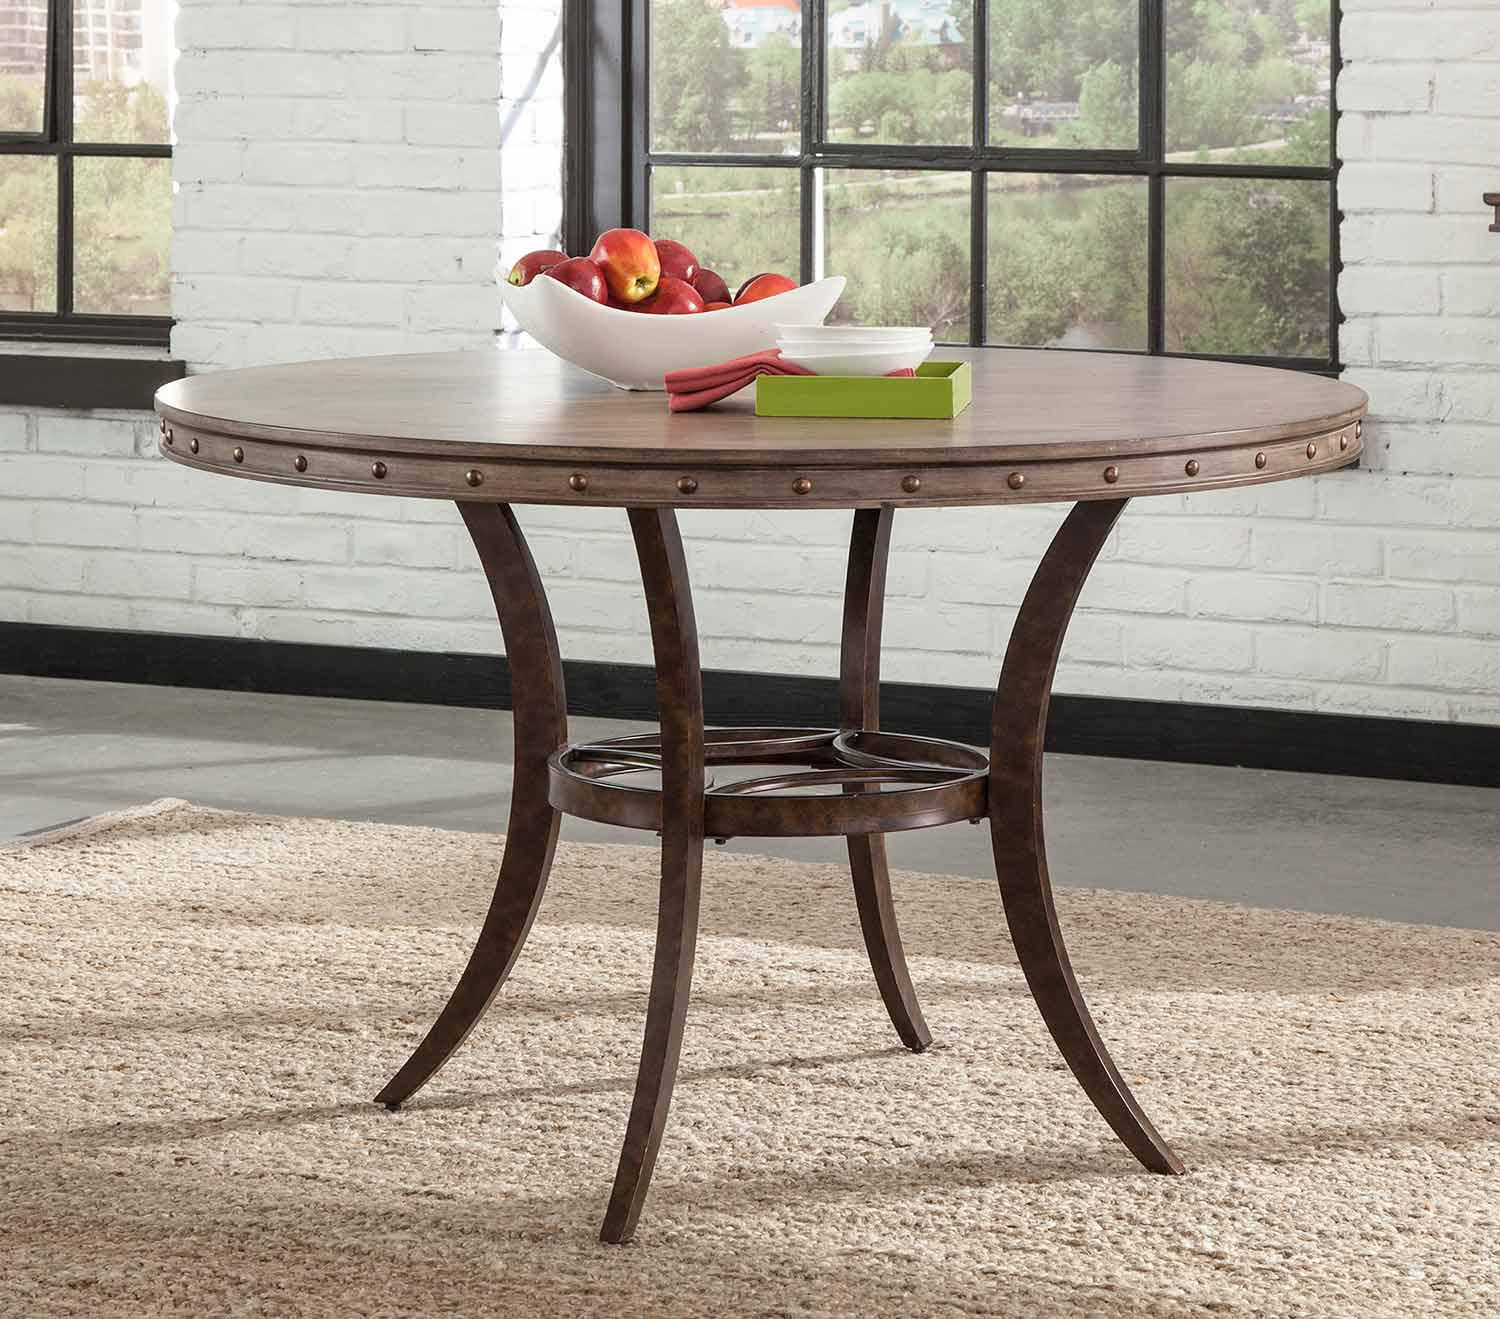 Hillsdale Emmons Round Dining Table - Washed Gray